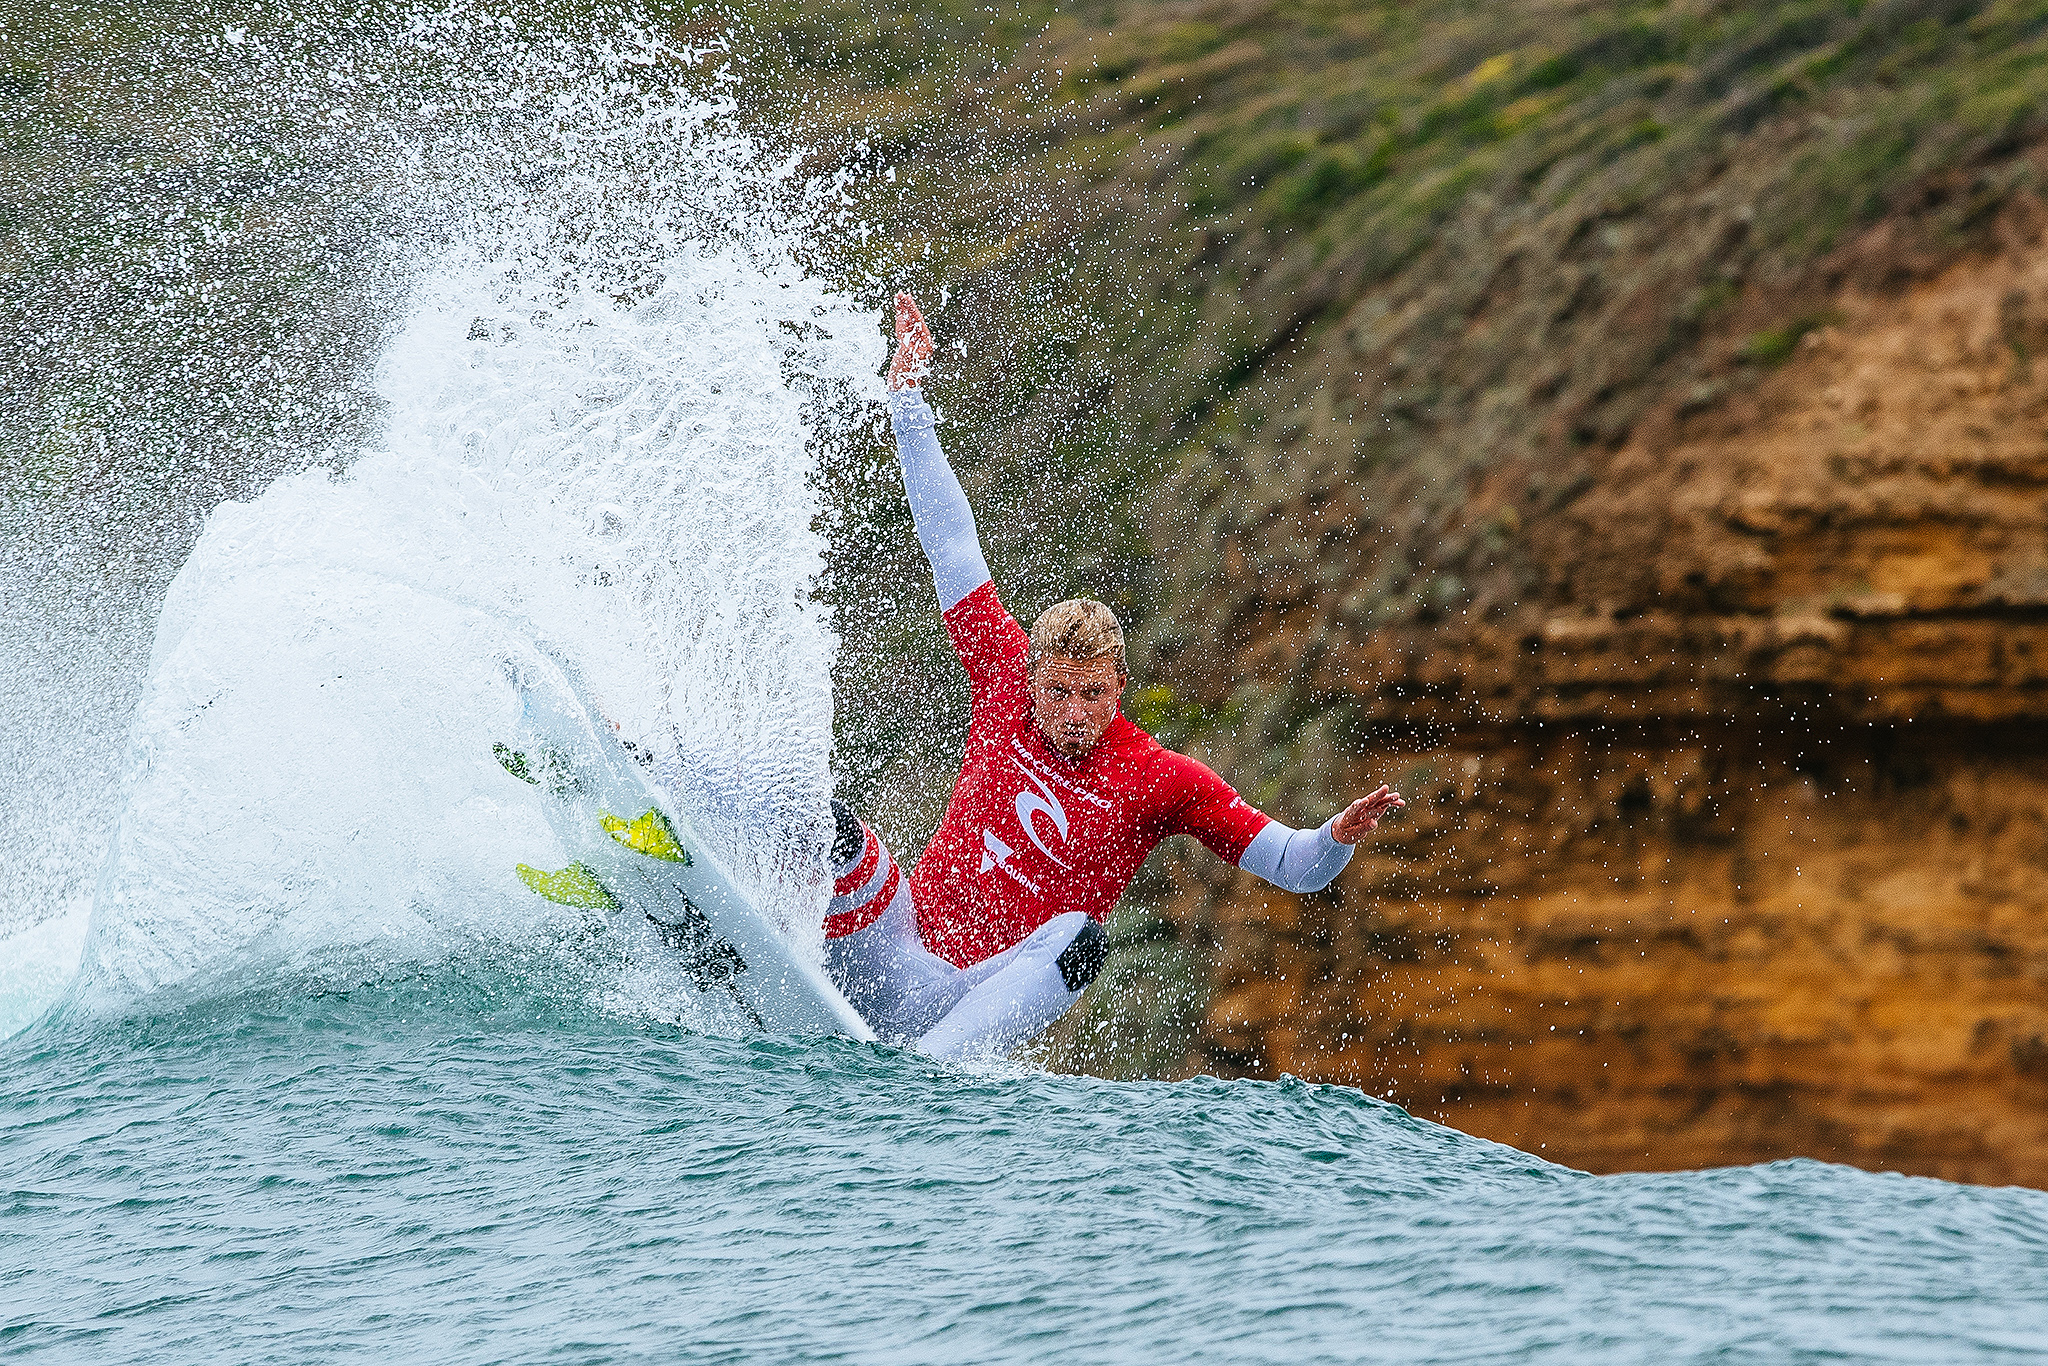 Kolohe Andino of USA won his Round One heat at the Rip Curl Pro, Bells Beach.